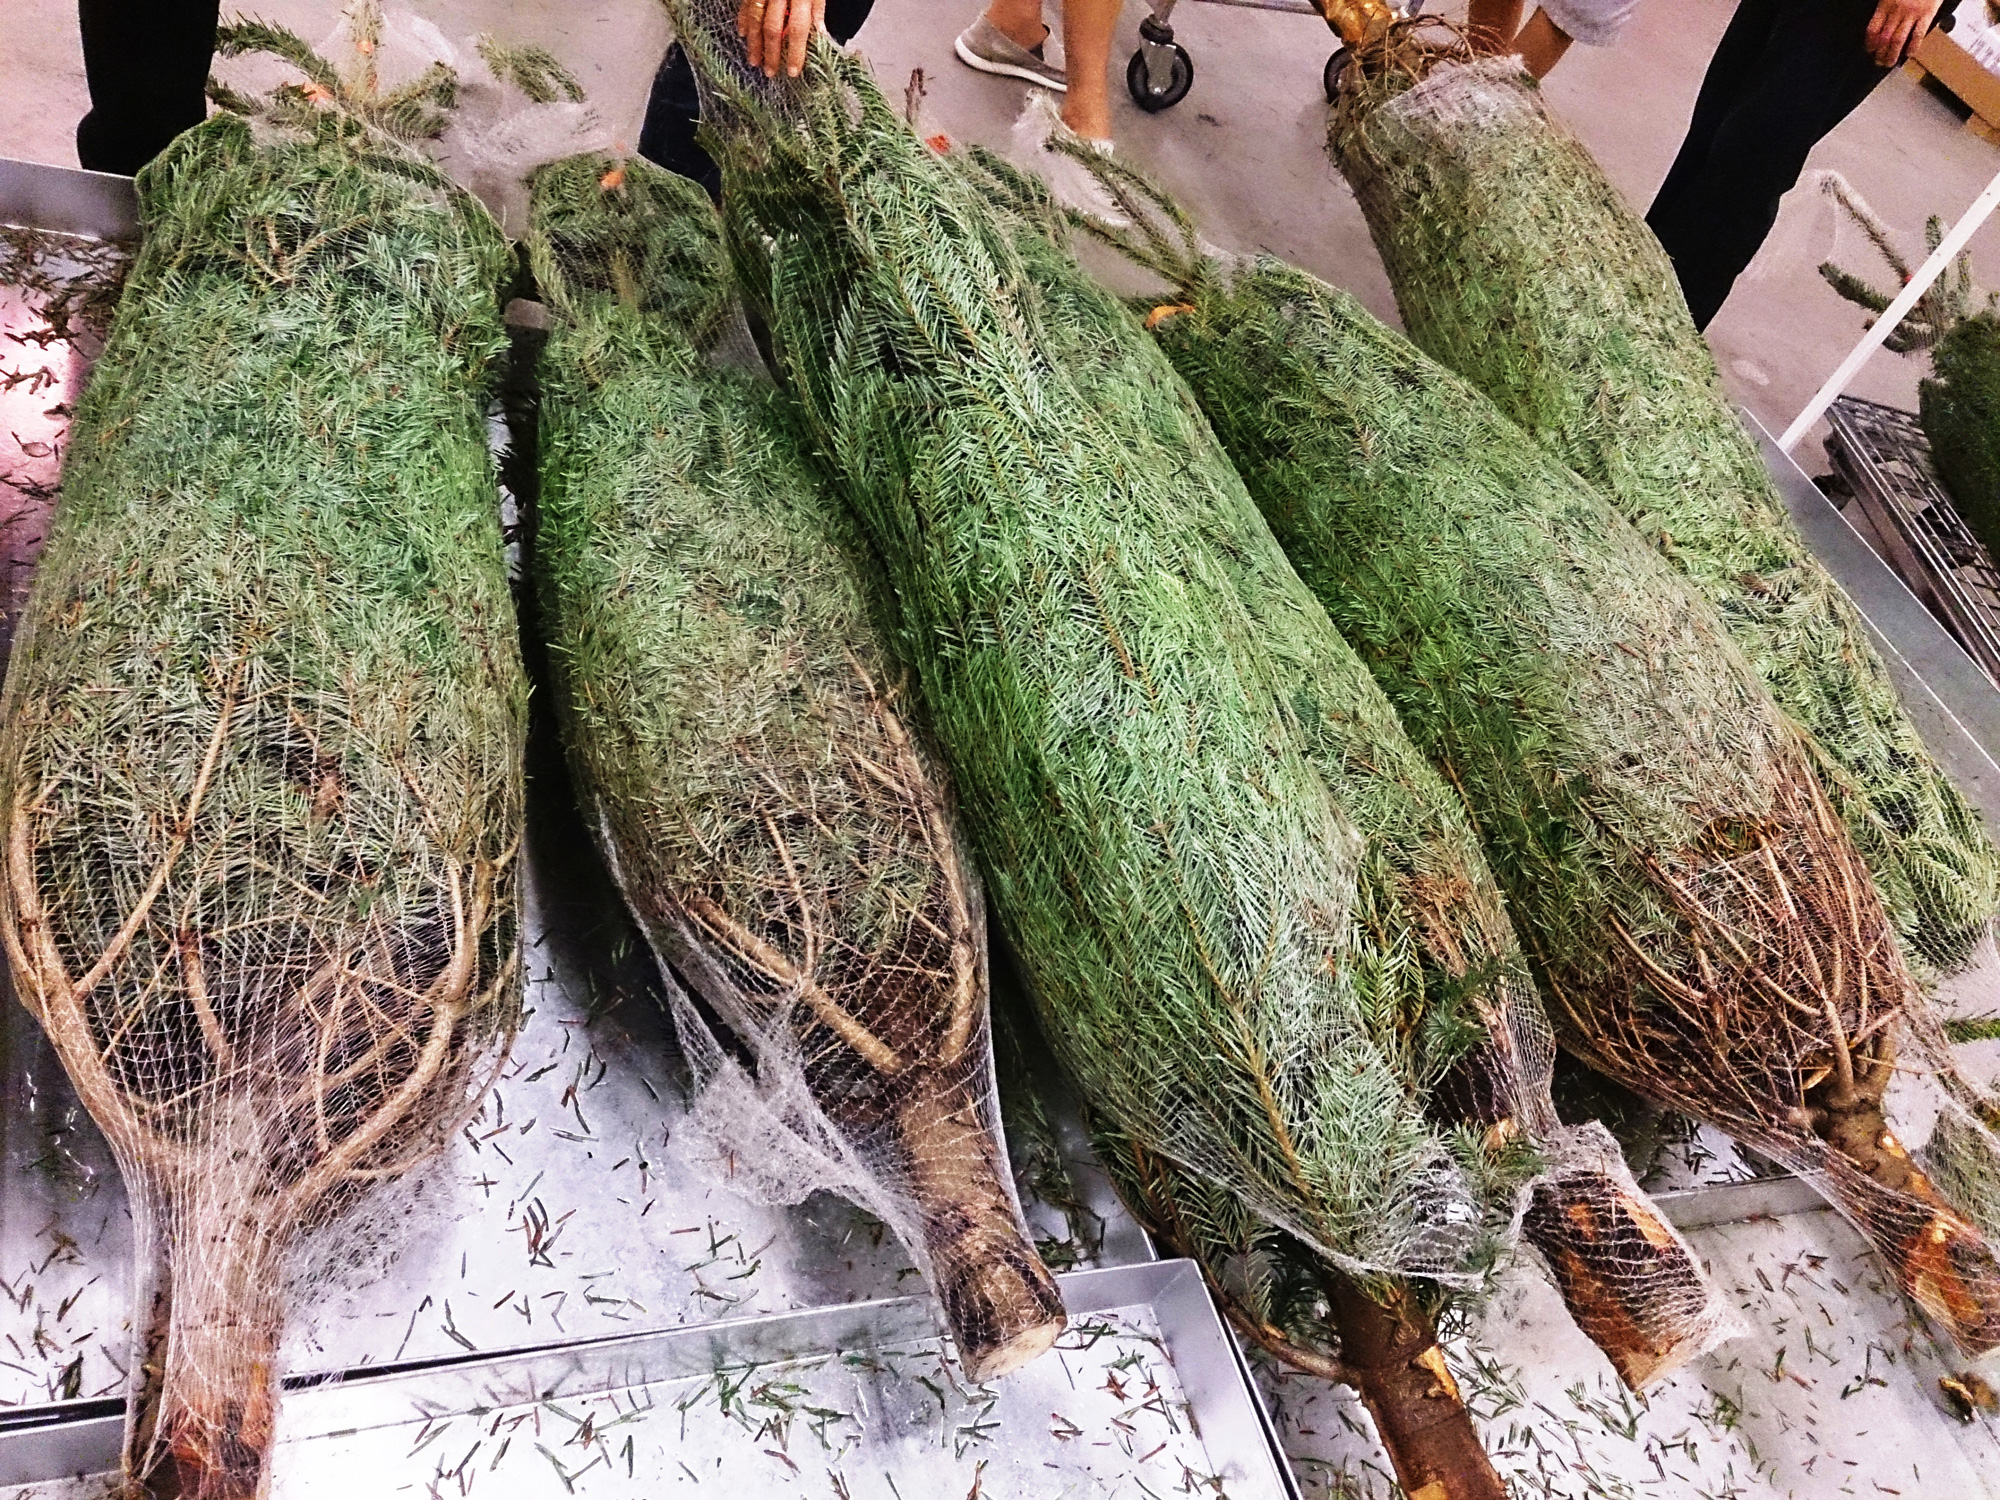 There's an 'exotic' Christmas tree selling for $1,000 in the Village